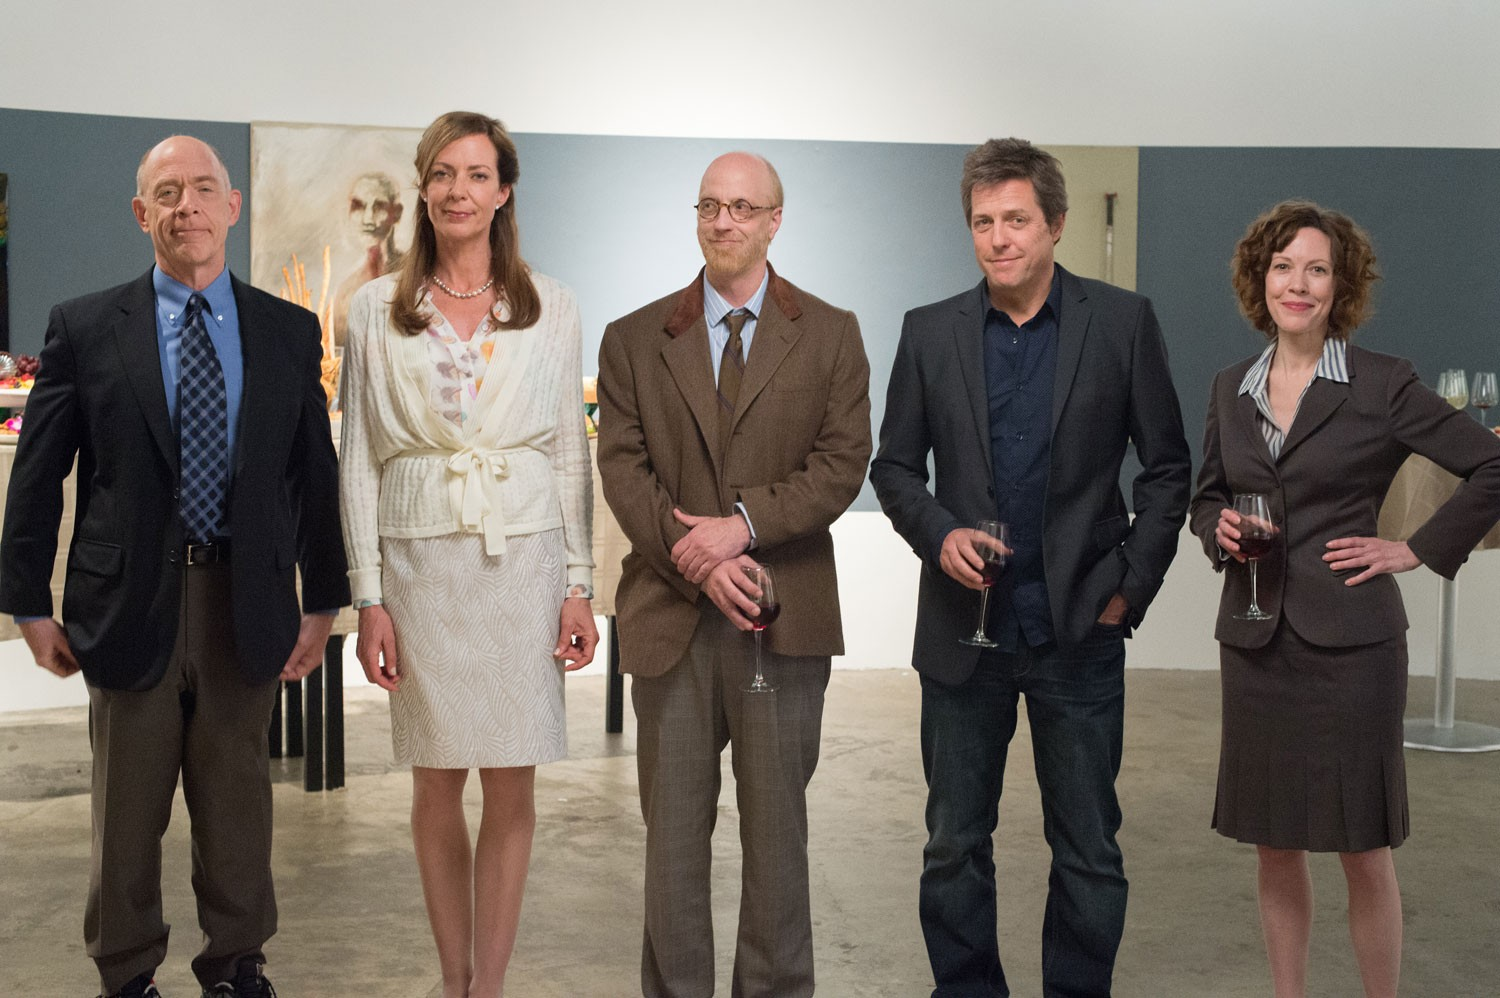 Allison Janney,Chris Elliott,Hugh Grant,J.K. Simmons